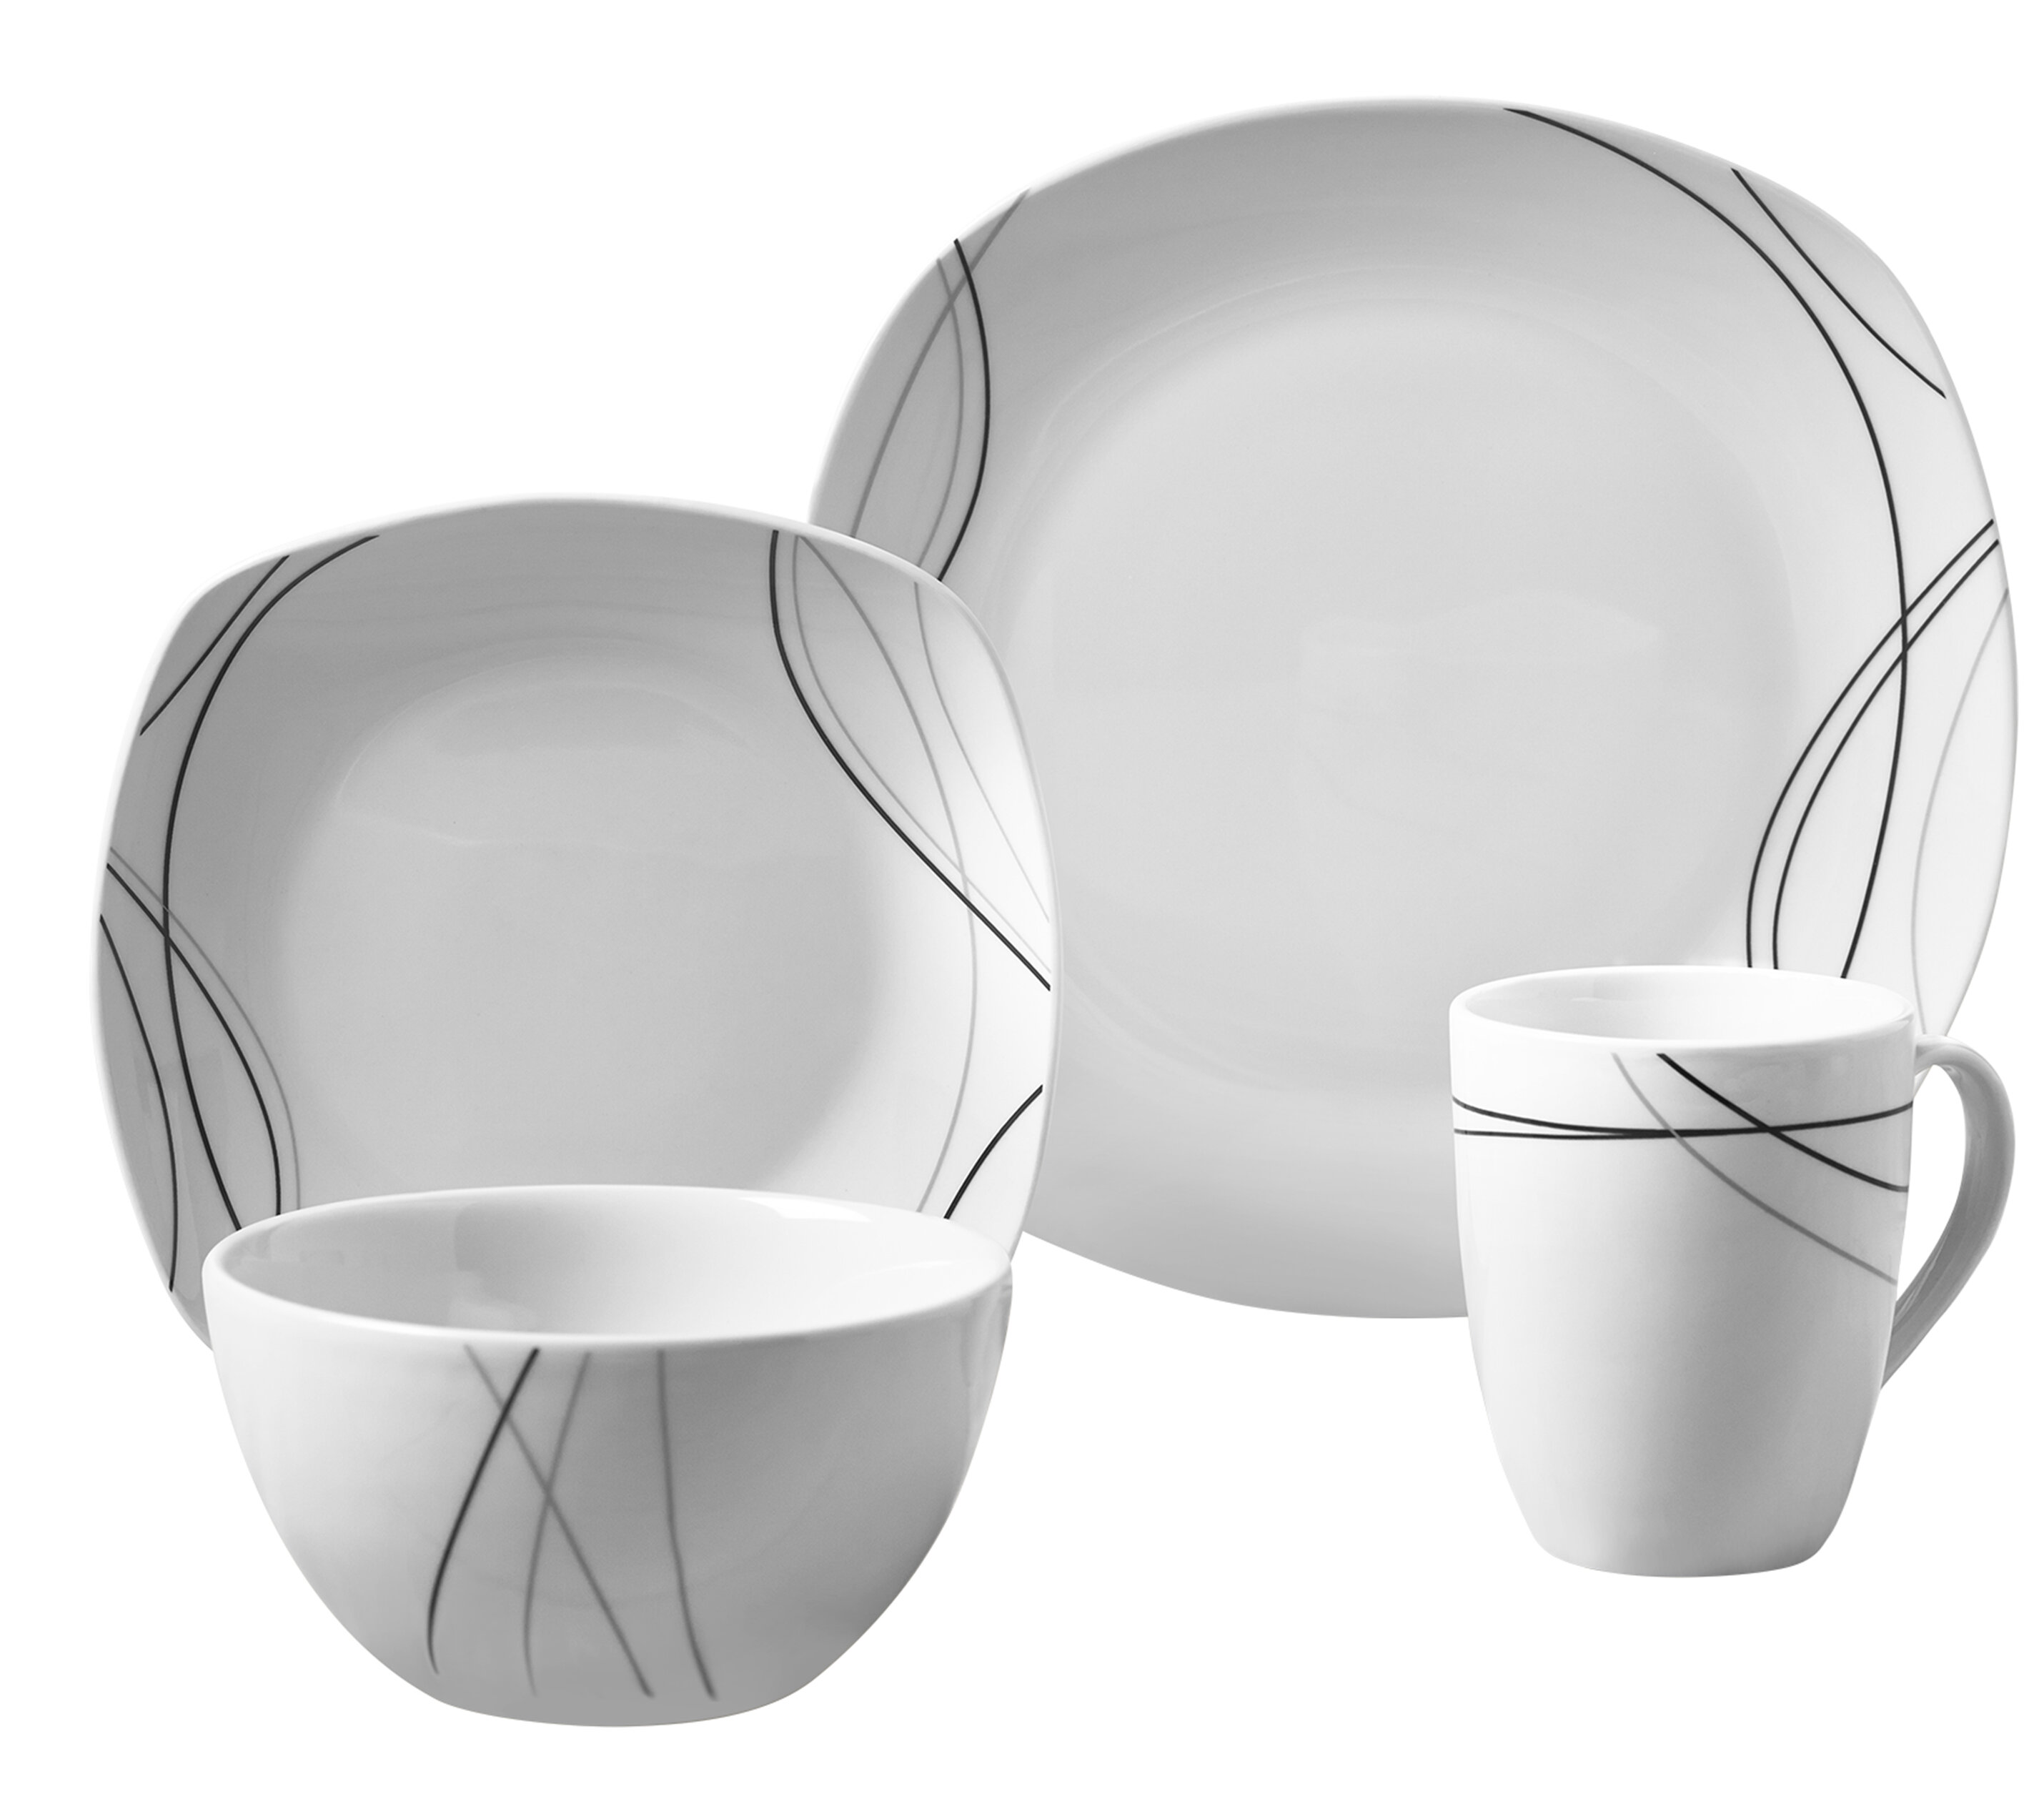 High Quality Alec 16 Piece Dinnerware Set, Service For 4. By Tabletops Gallery